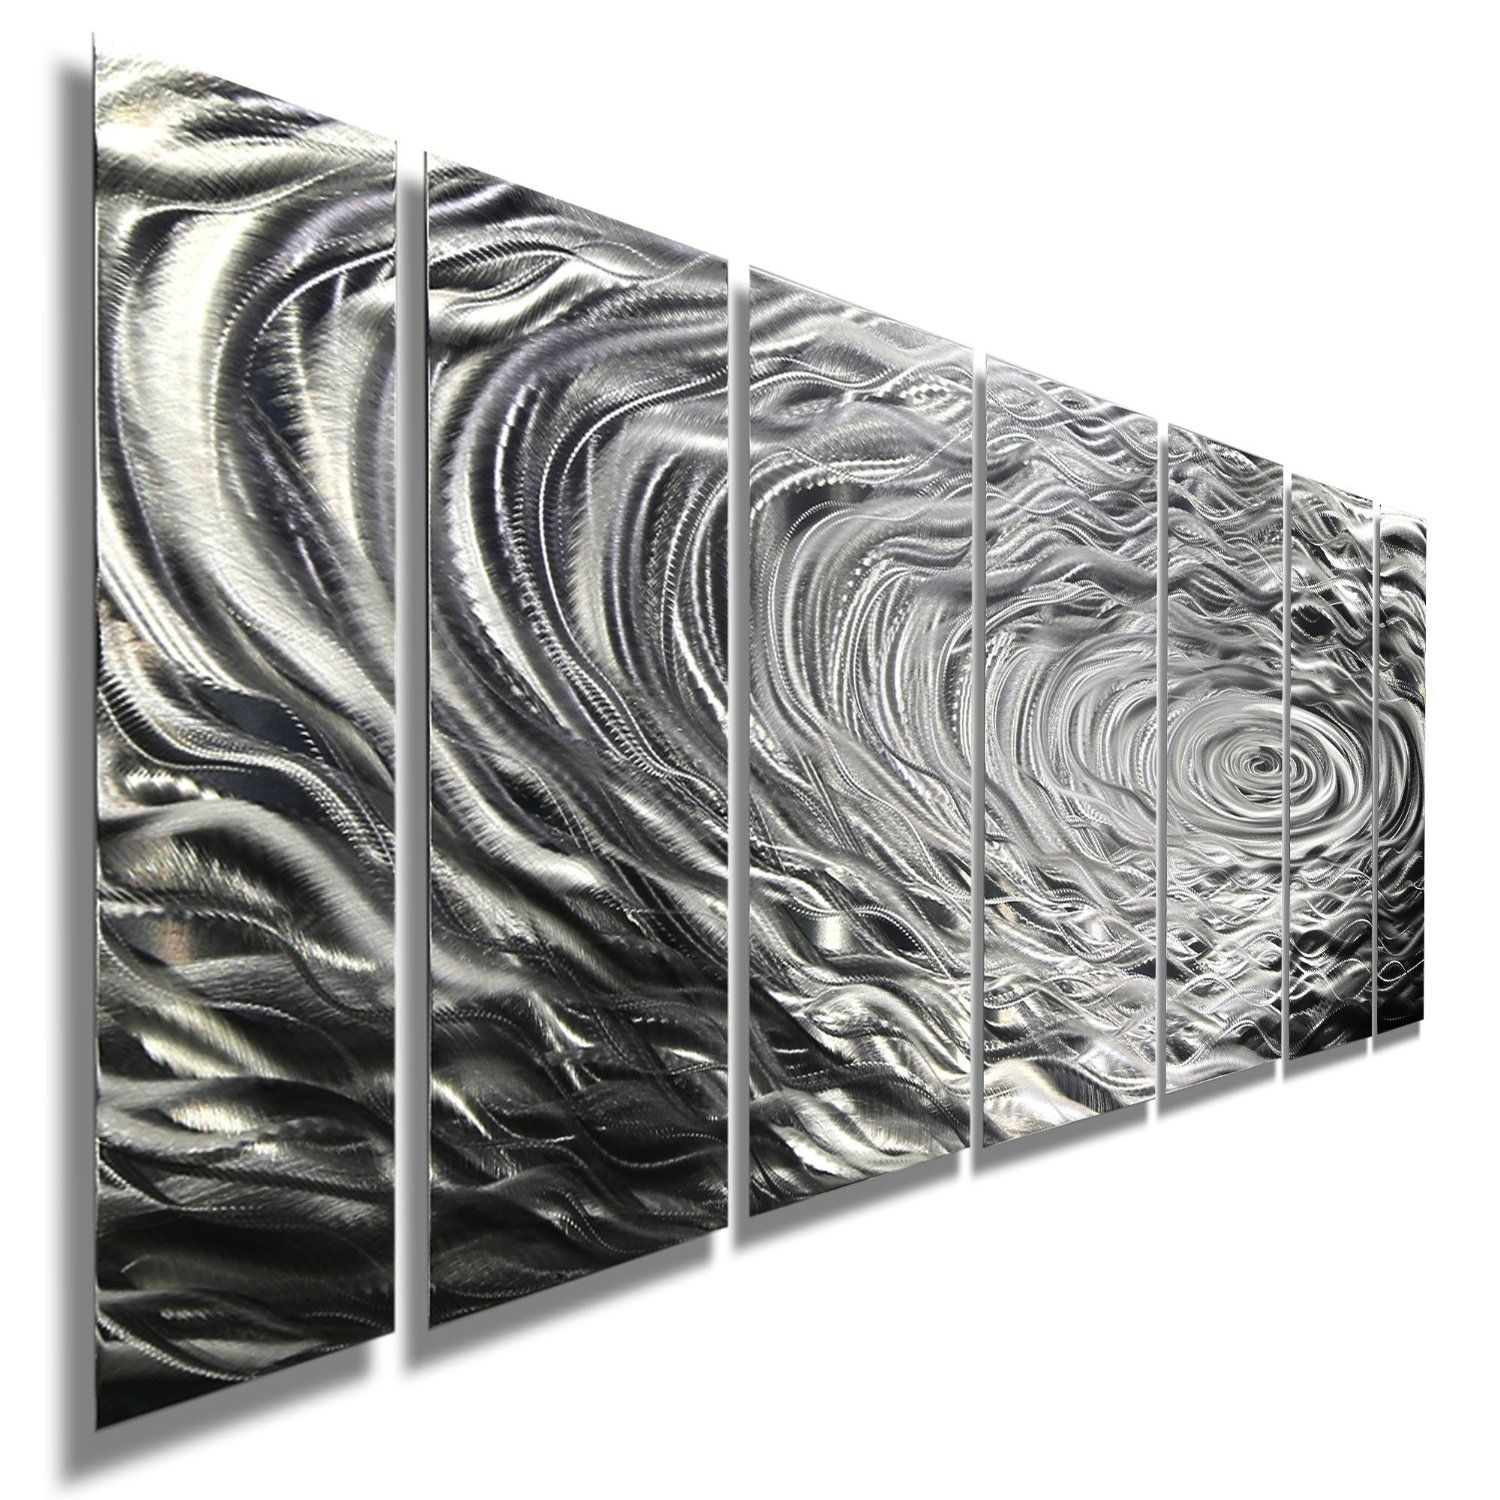 Large Black Metal Wall Art Amazon  Large Silver Water Inspired Metal Wall Art